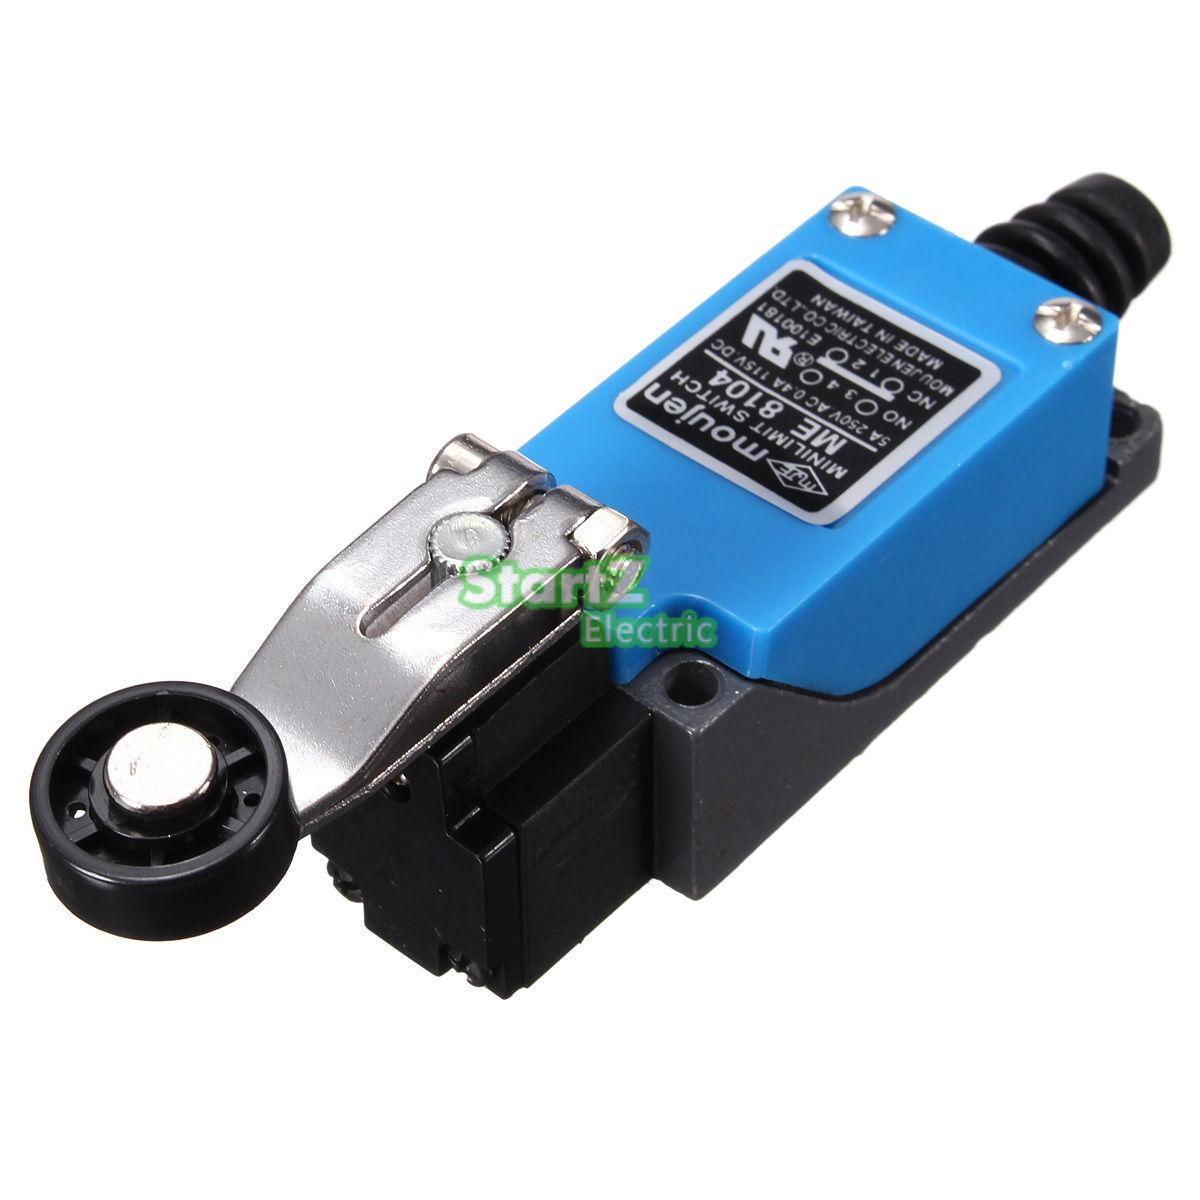 ME-8104 Rotary Plastic Roller Arm Enclosed Limit Switch Finish Maching professional electrical switches dustproof rotary roller lever limit switch overtravel limit for cnc mill laser plasma me 8108